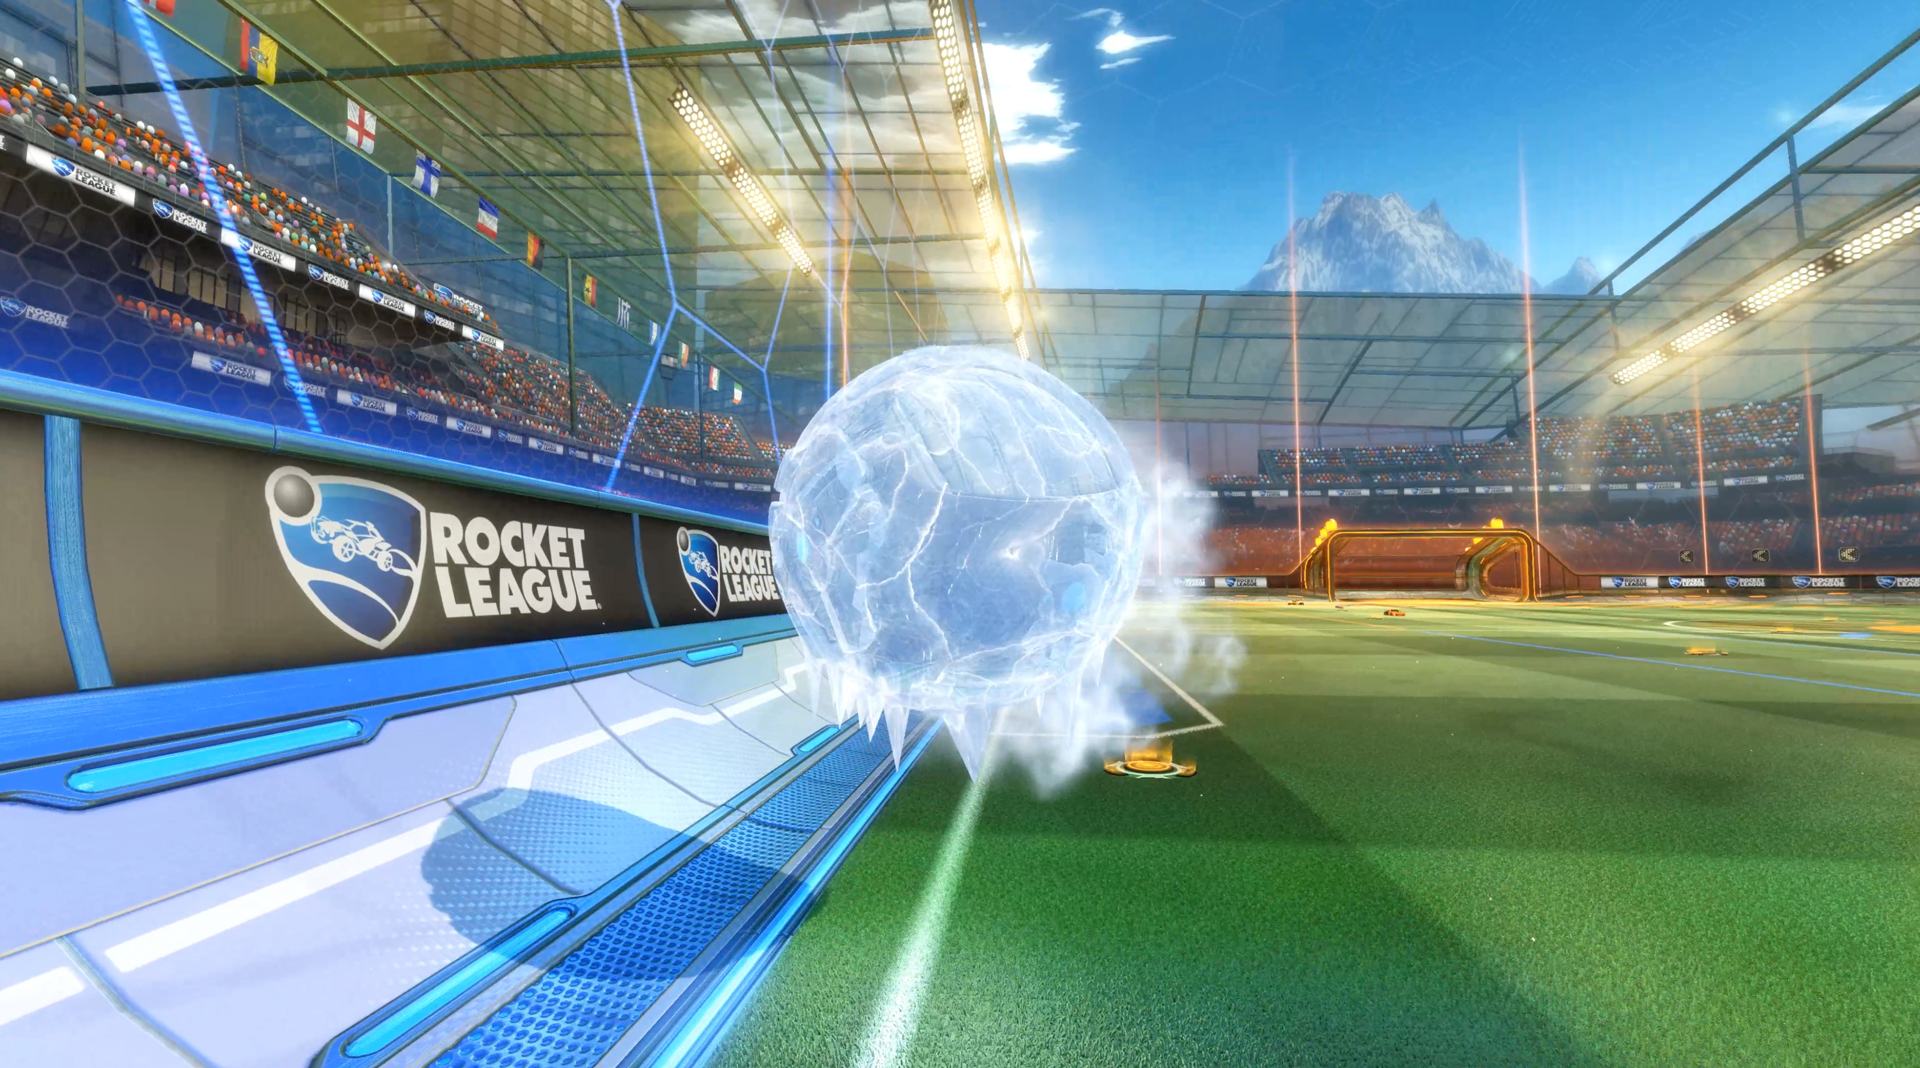 Rocket League Rumble - Freezer